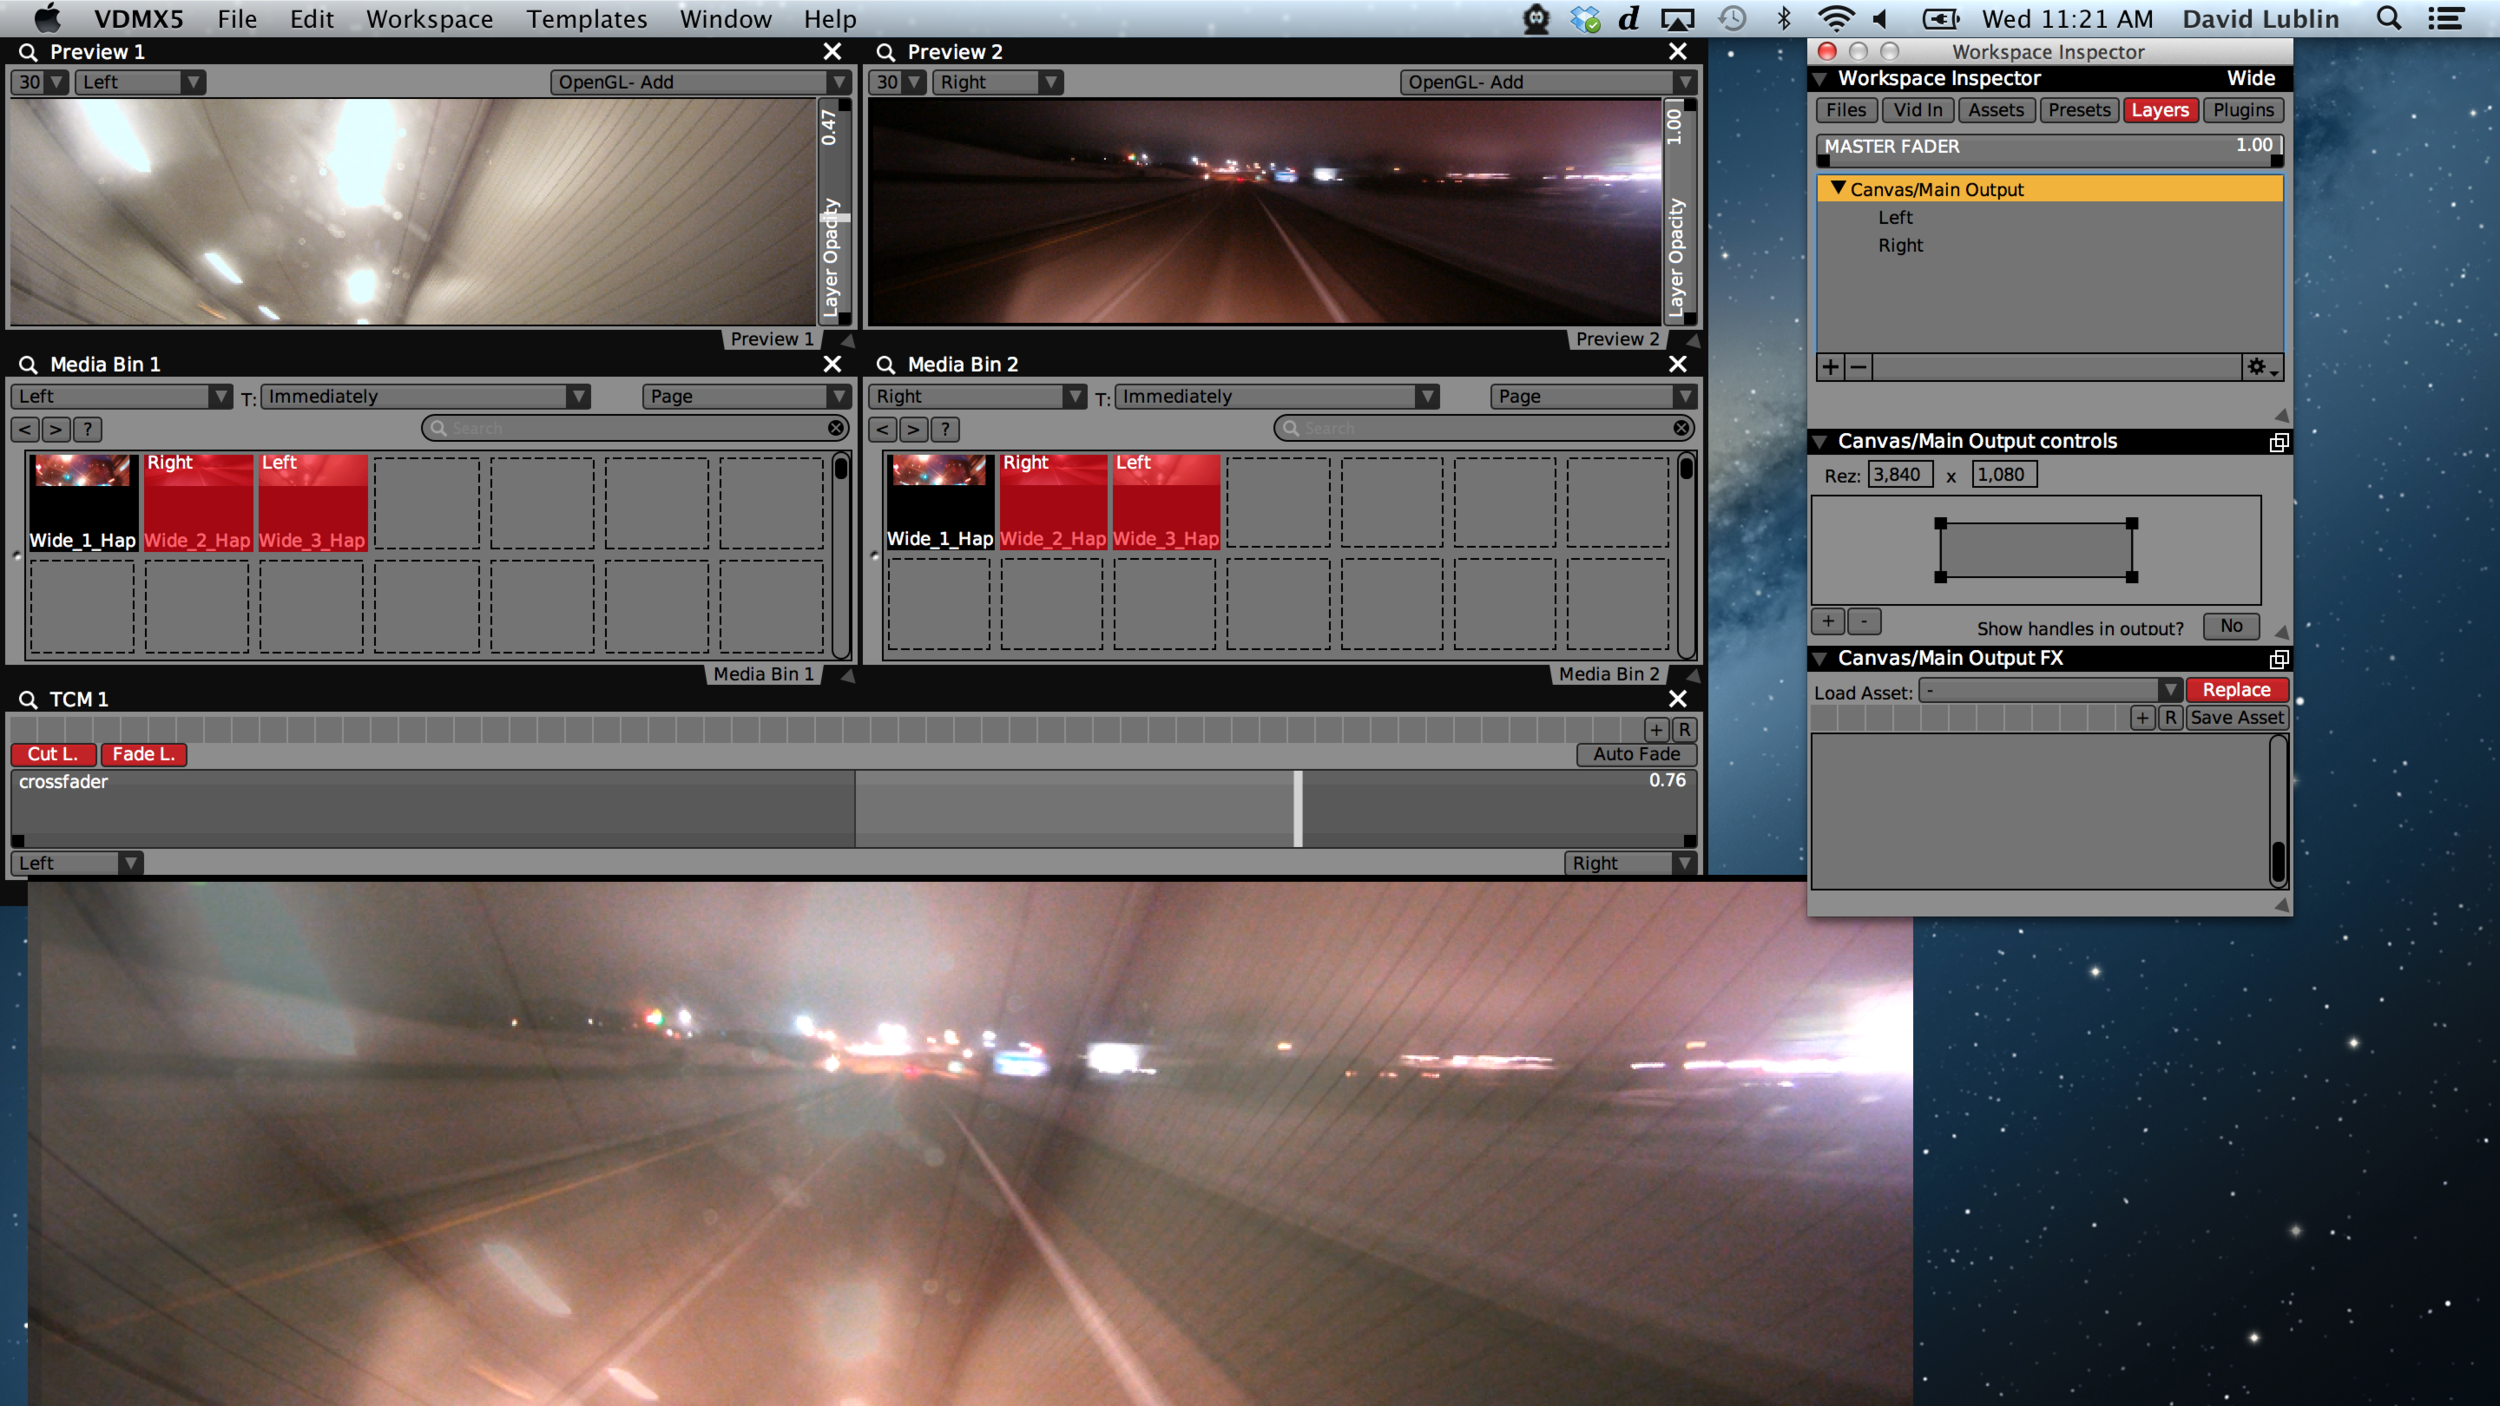 Crossfading between two 3840 x 1080 Hap encoded video clips in VDMX for dual output.